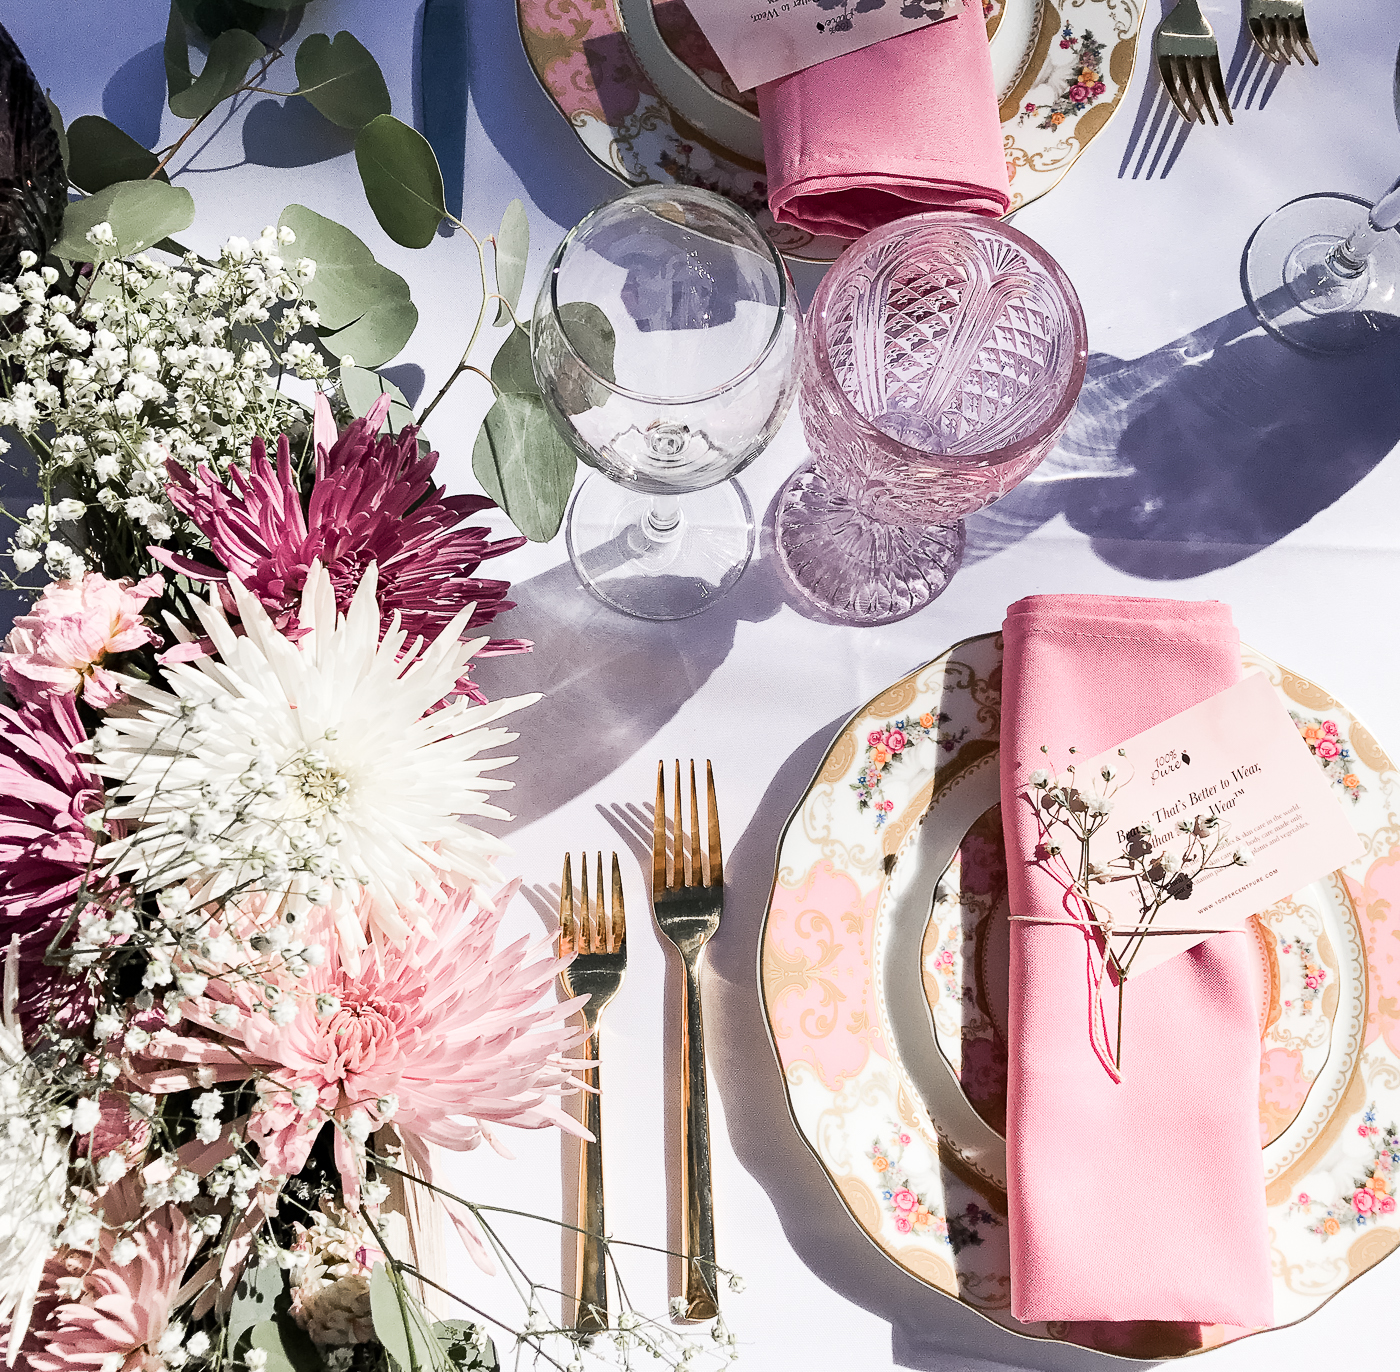 100% Pure Garden Beauty Brunch   The Chic Diary